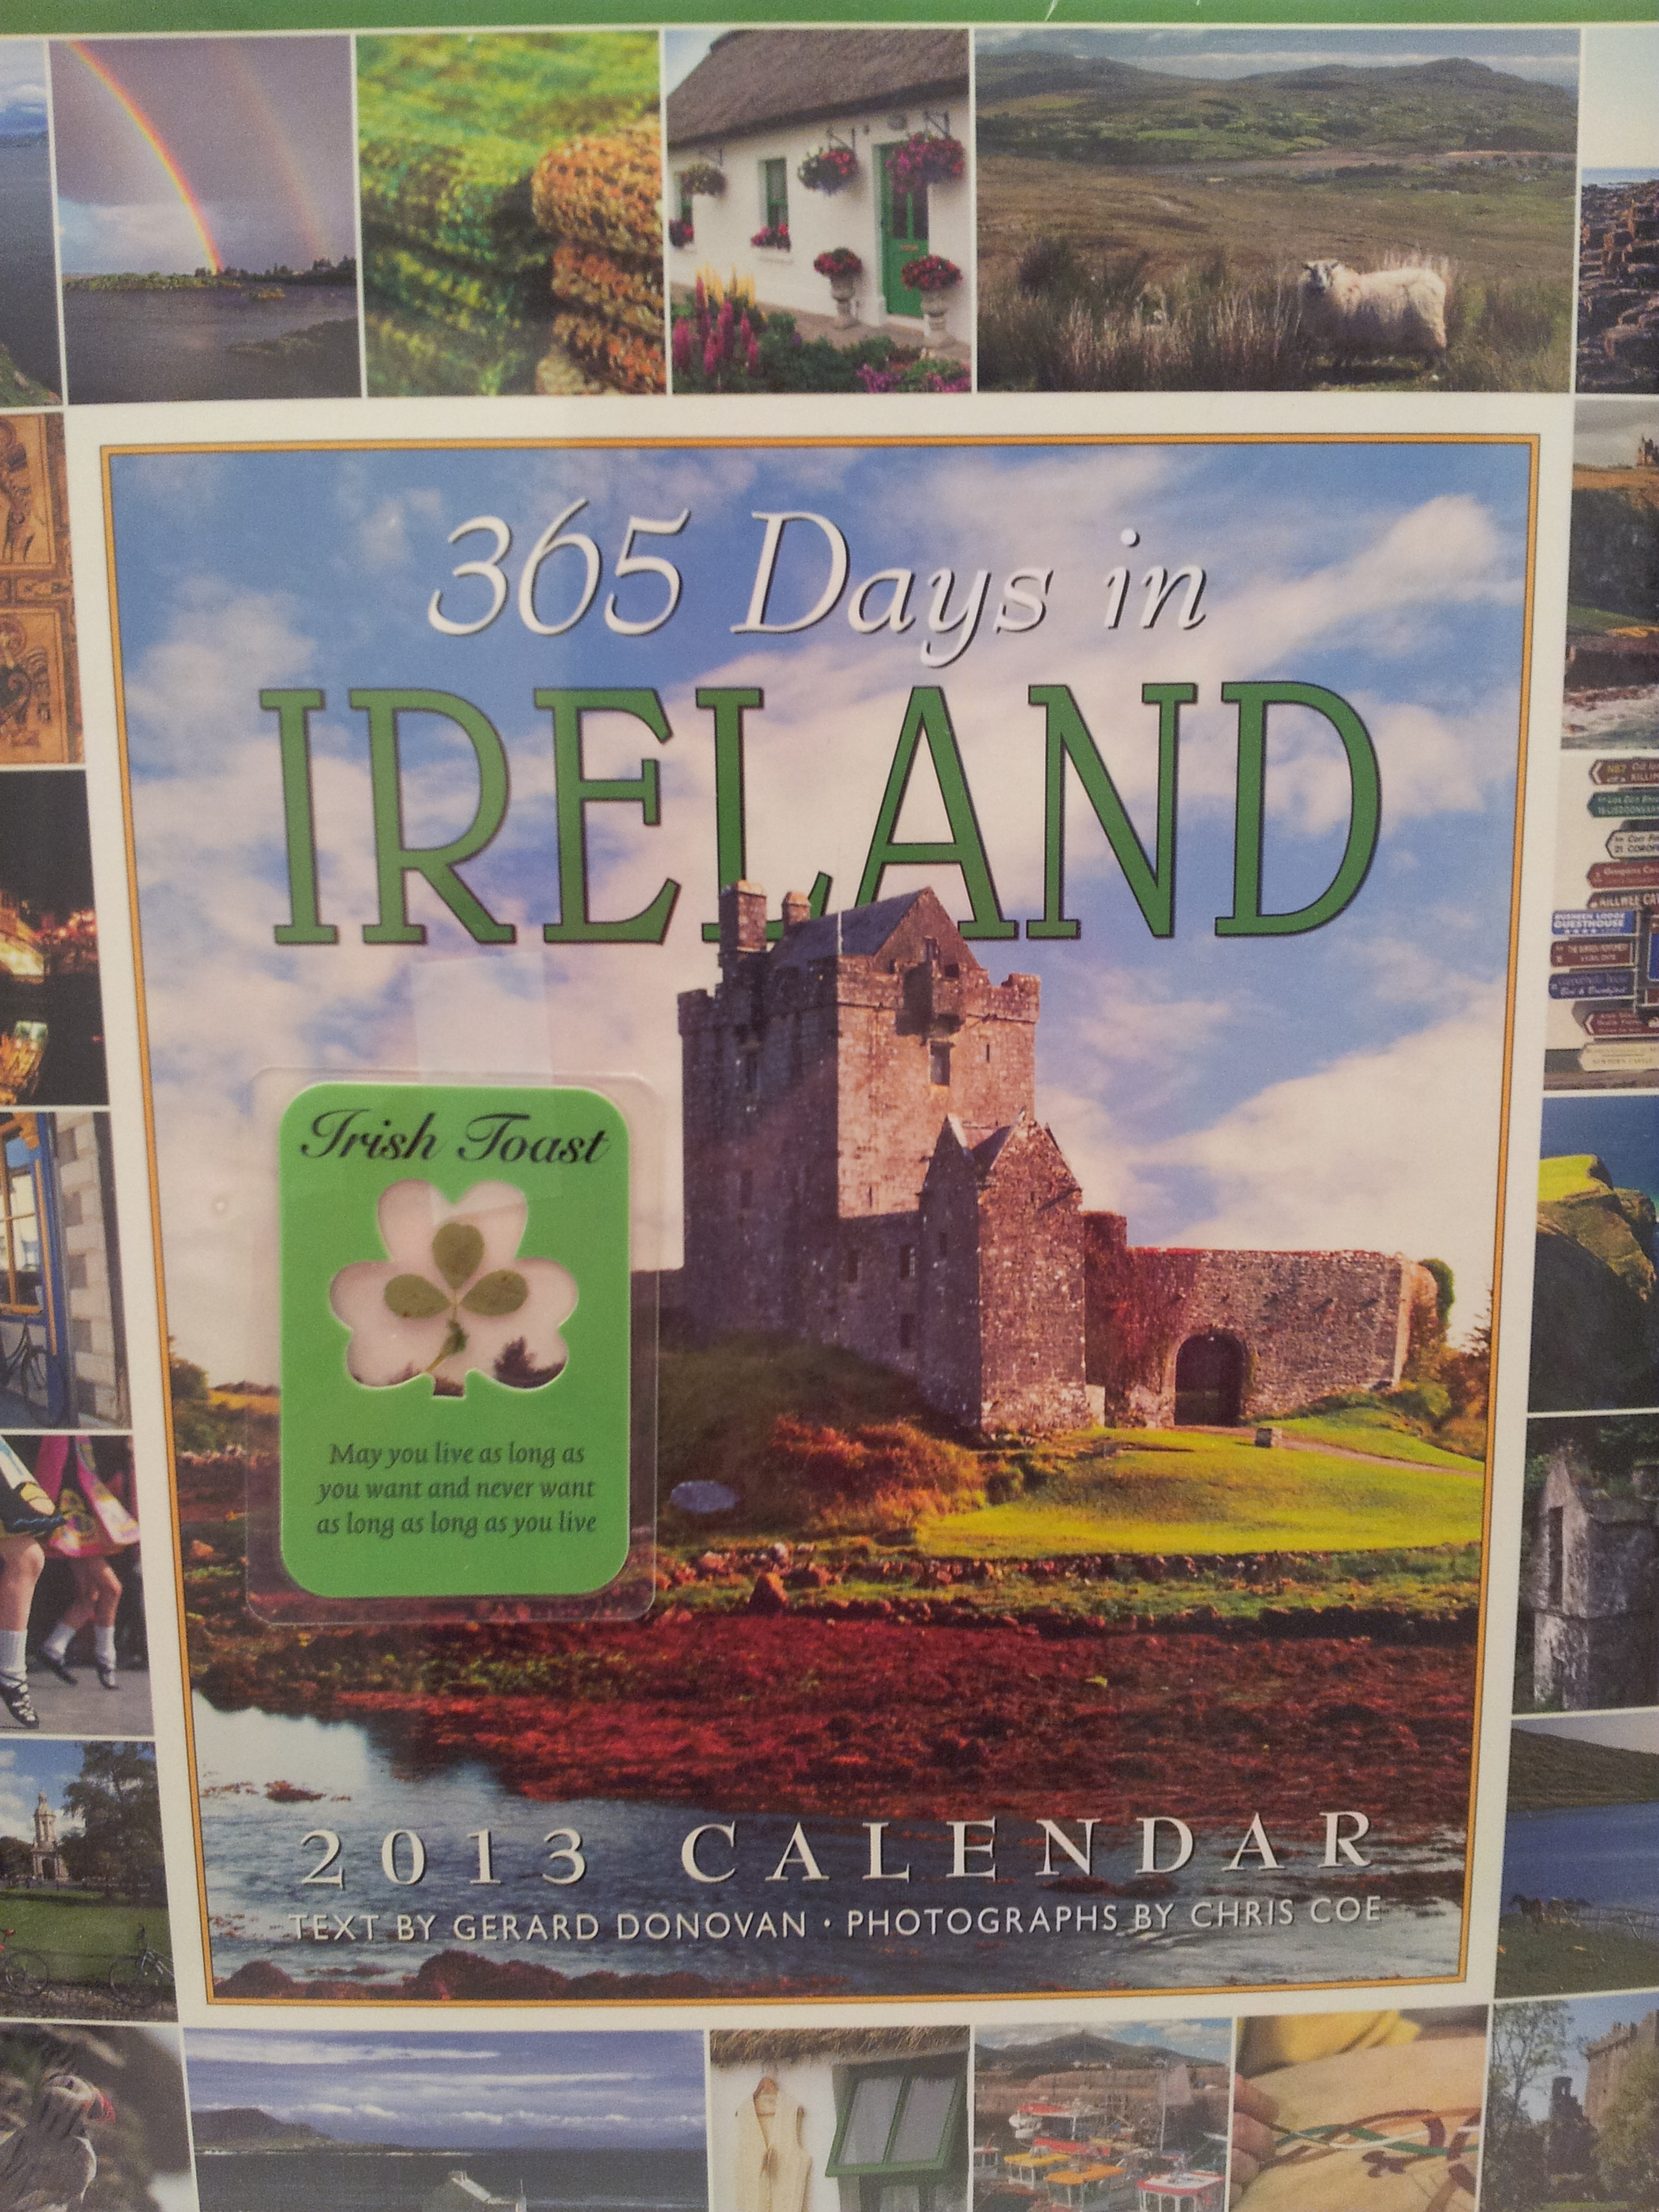 I received a great Irish calendar and a shamrock and toast from my Secret Santa Stephanie in Missouri.  -- Susan